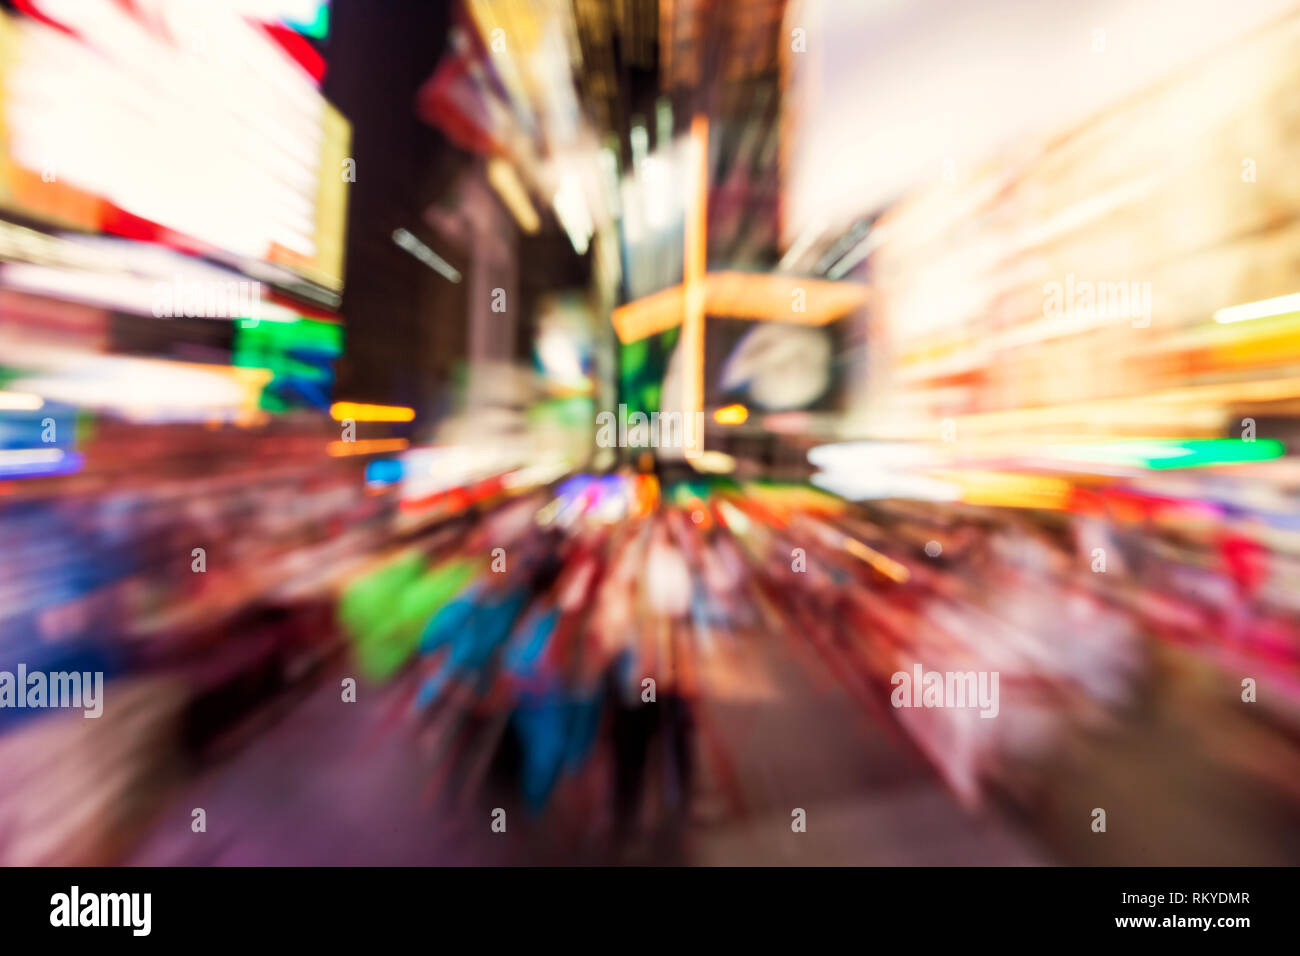 Dynamic Signs Stock Photos & Dynamic Signs Stock Images - Alamy